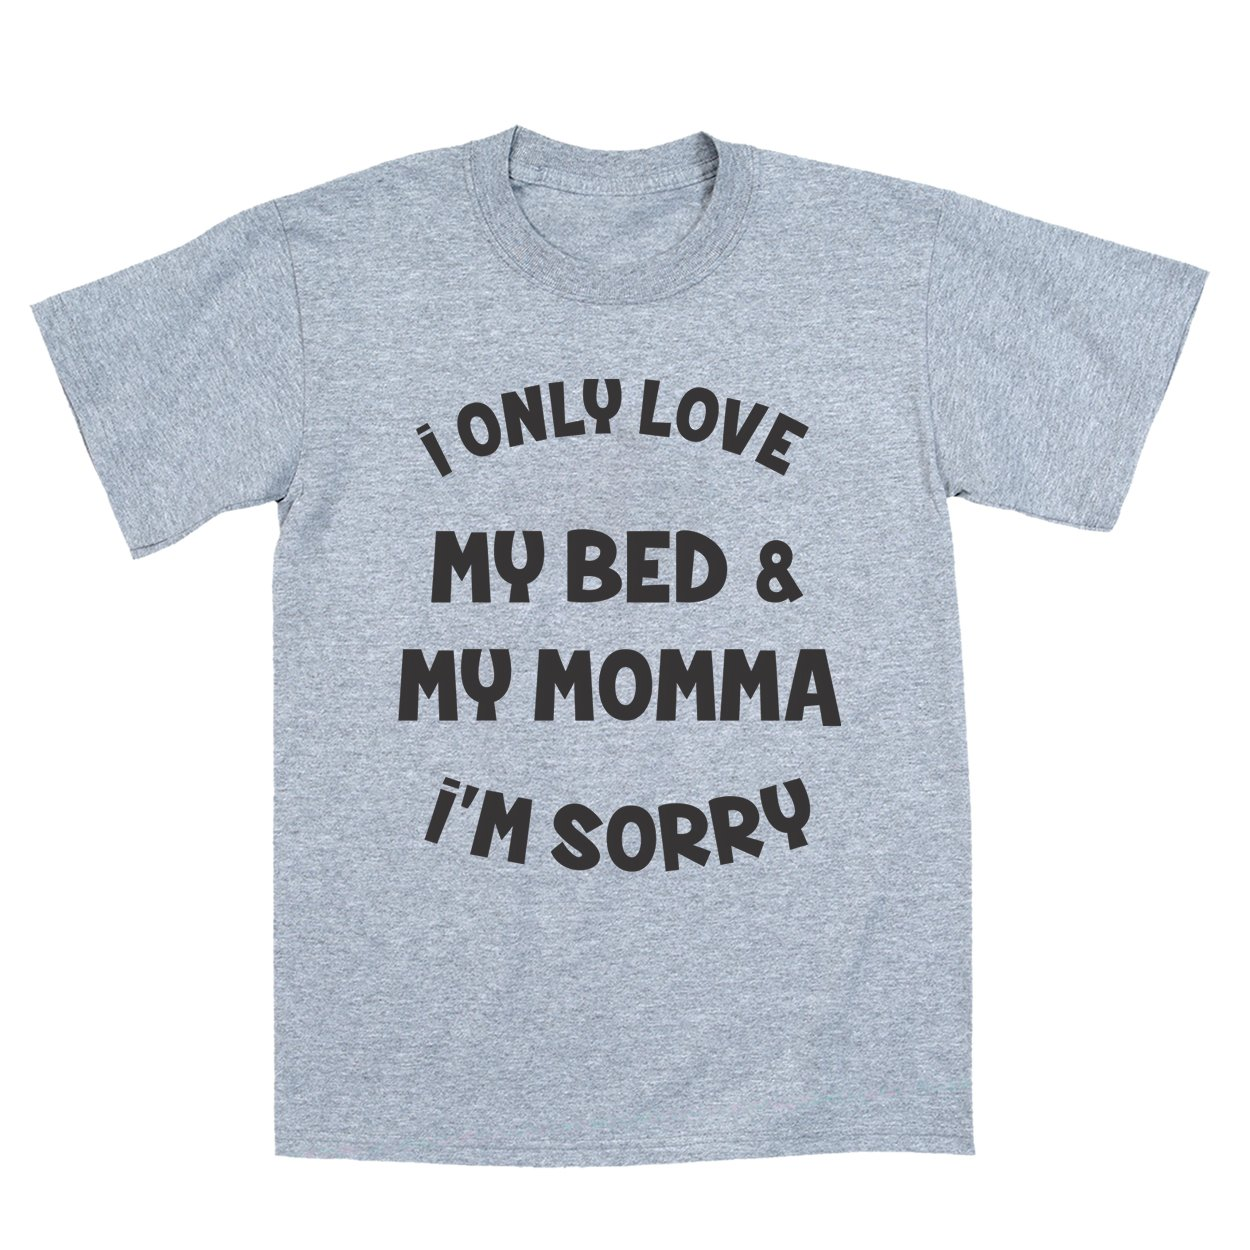 I Only Love My Bed and My Momma Toddler Shirt 2T Gray